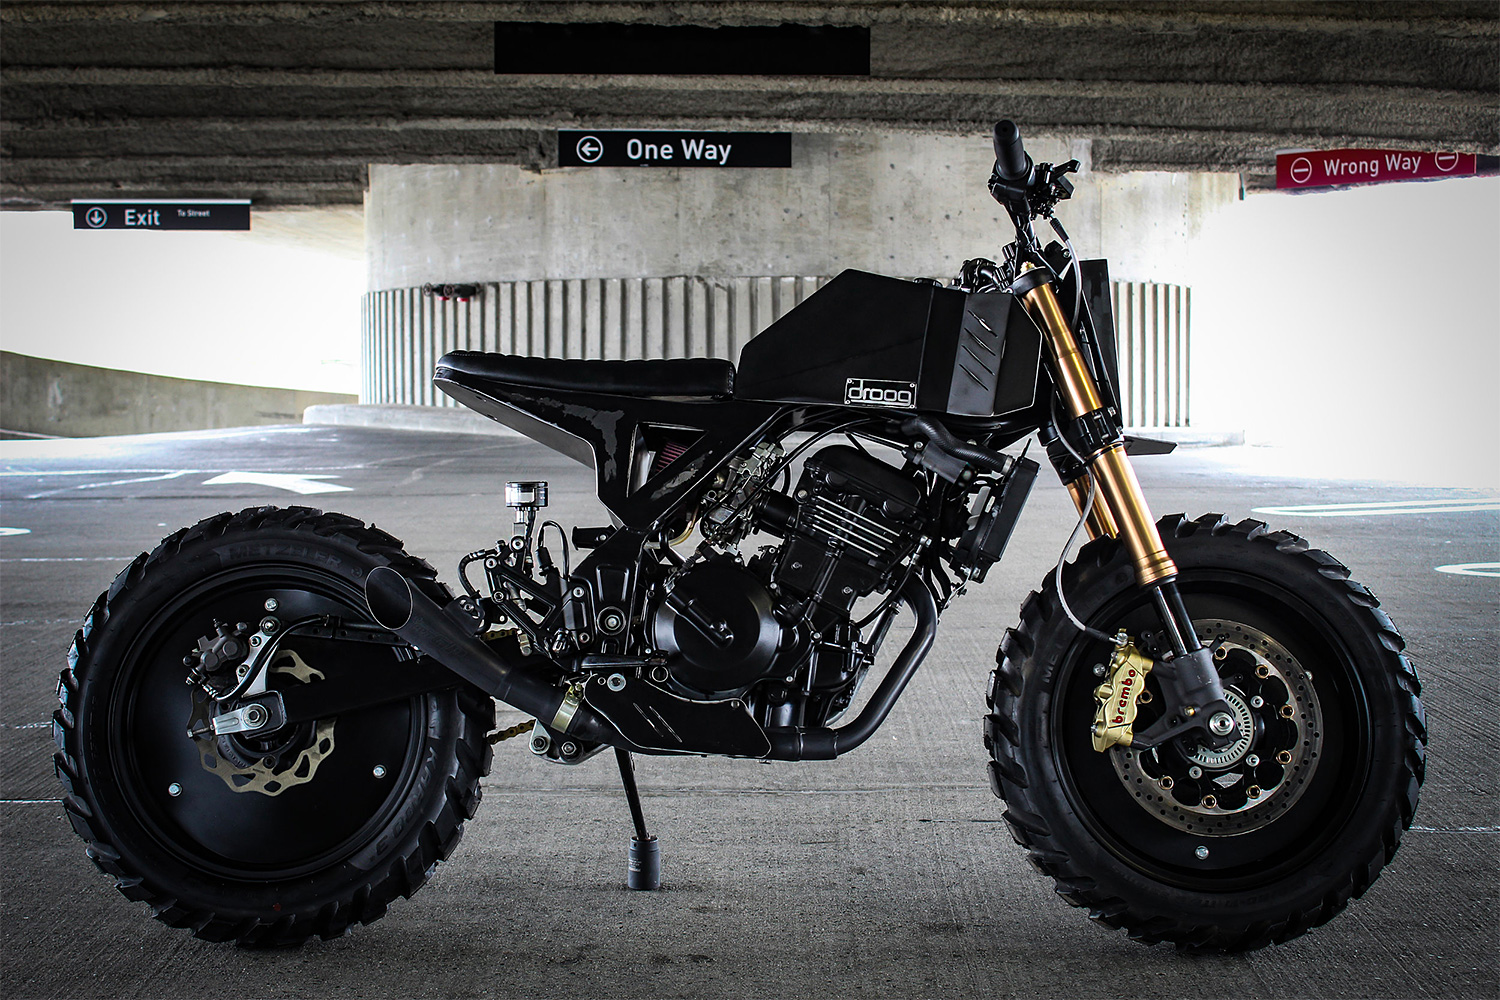 Droog Moto Rolls Out A Radical Streetfighter at werd.com